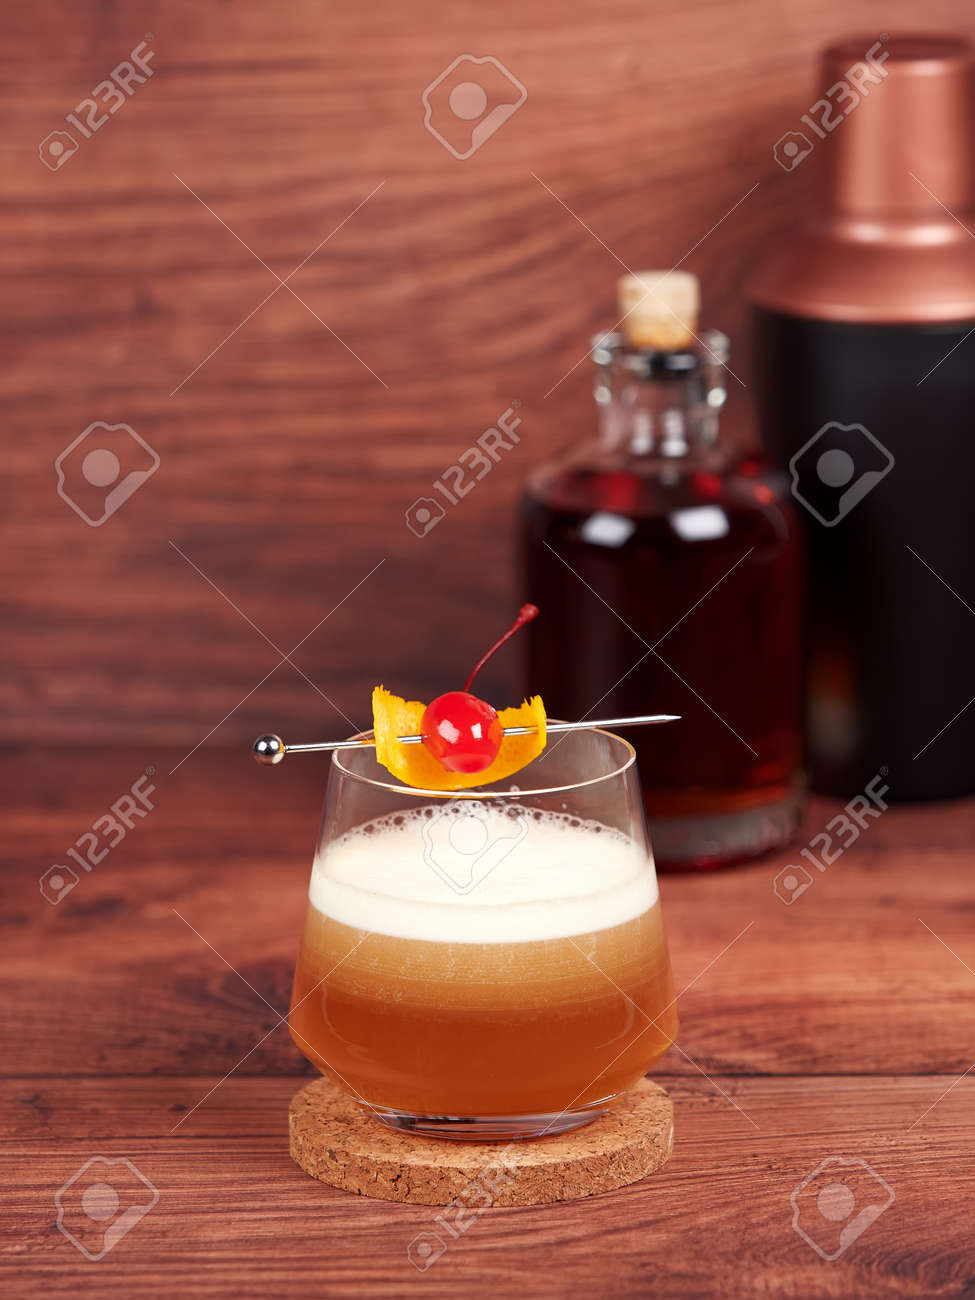 Amaretto sour: a cocktail made with amaretto liqueur, lemon juice, simple syrup and egg white, and topped with a cherry and orange - 157025443